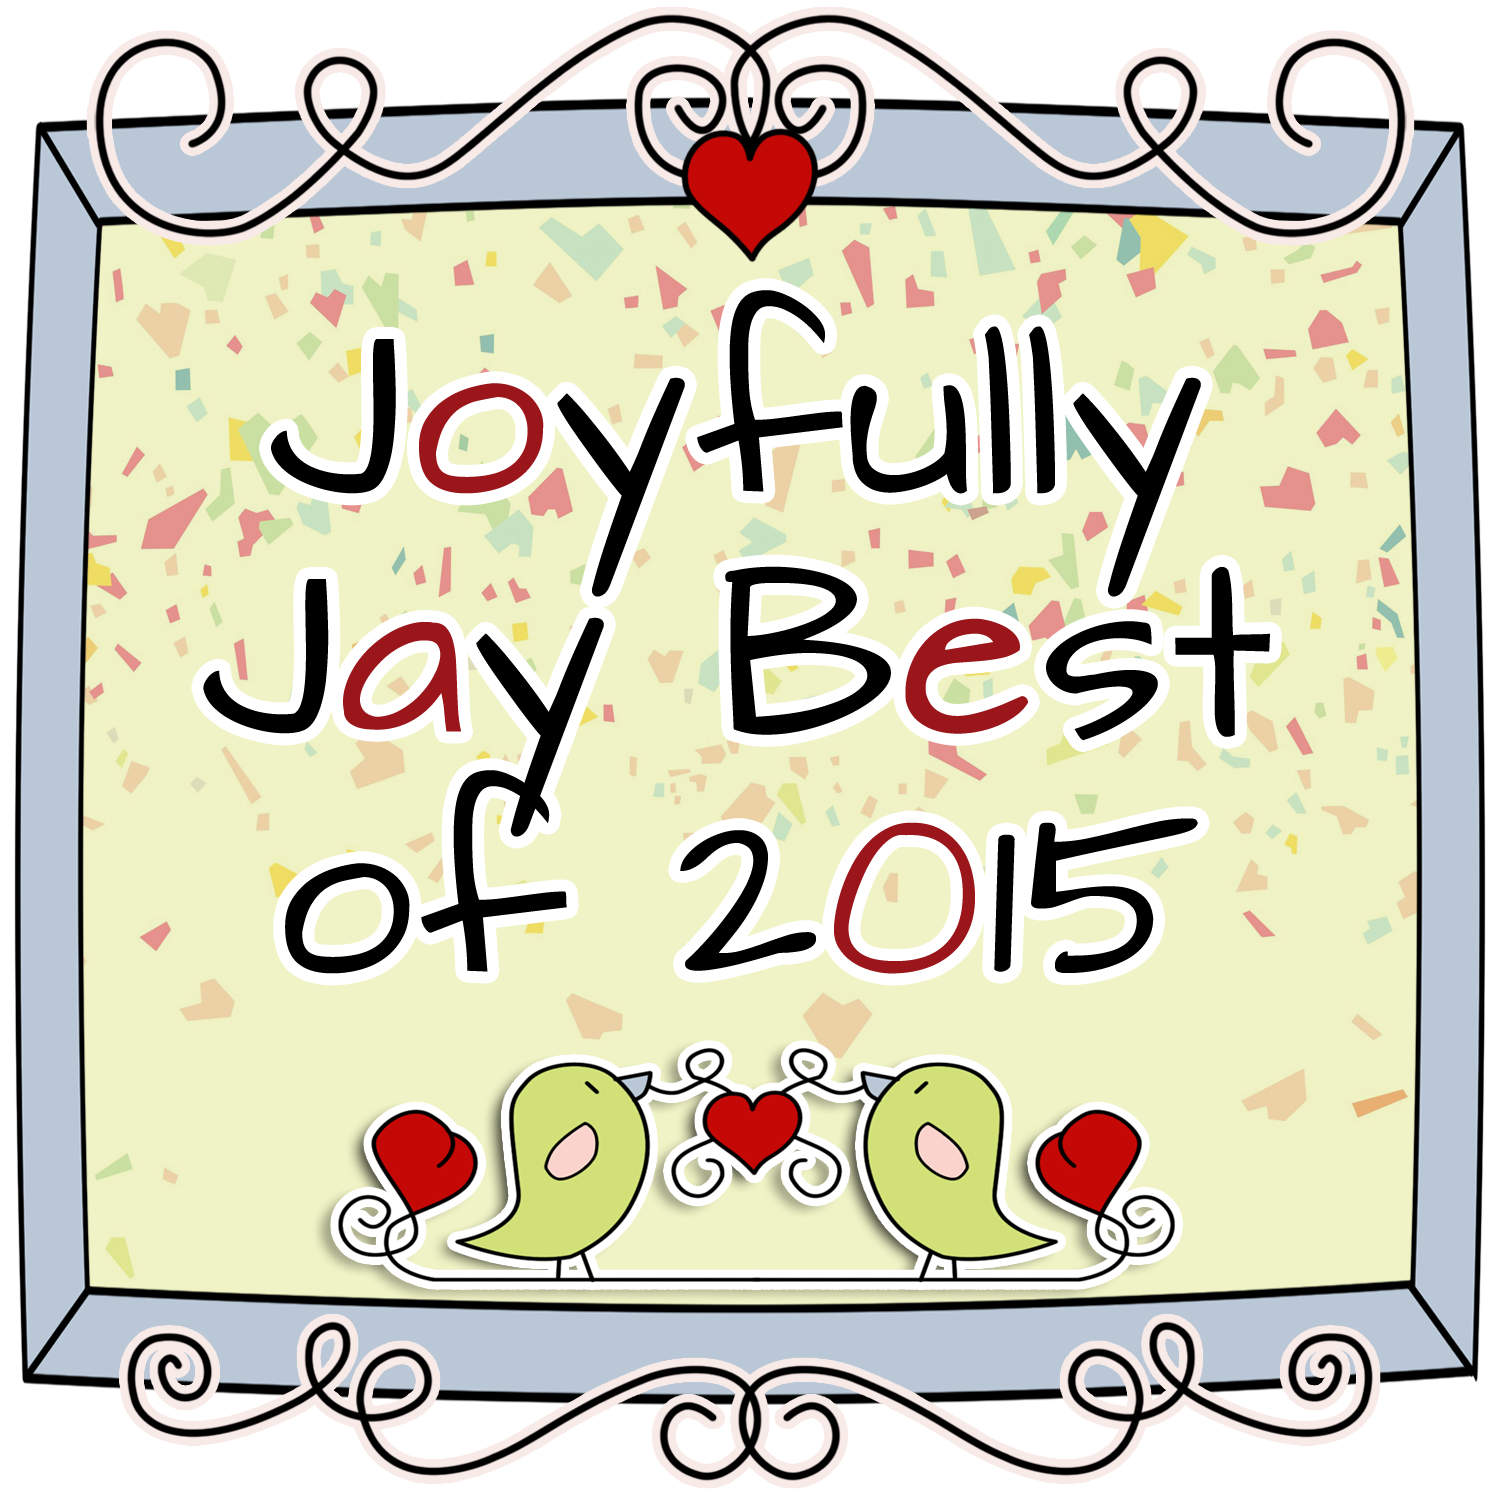 Sue's Best of 2015